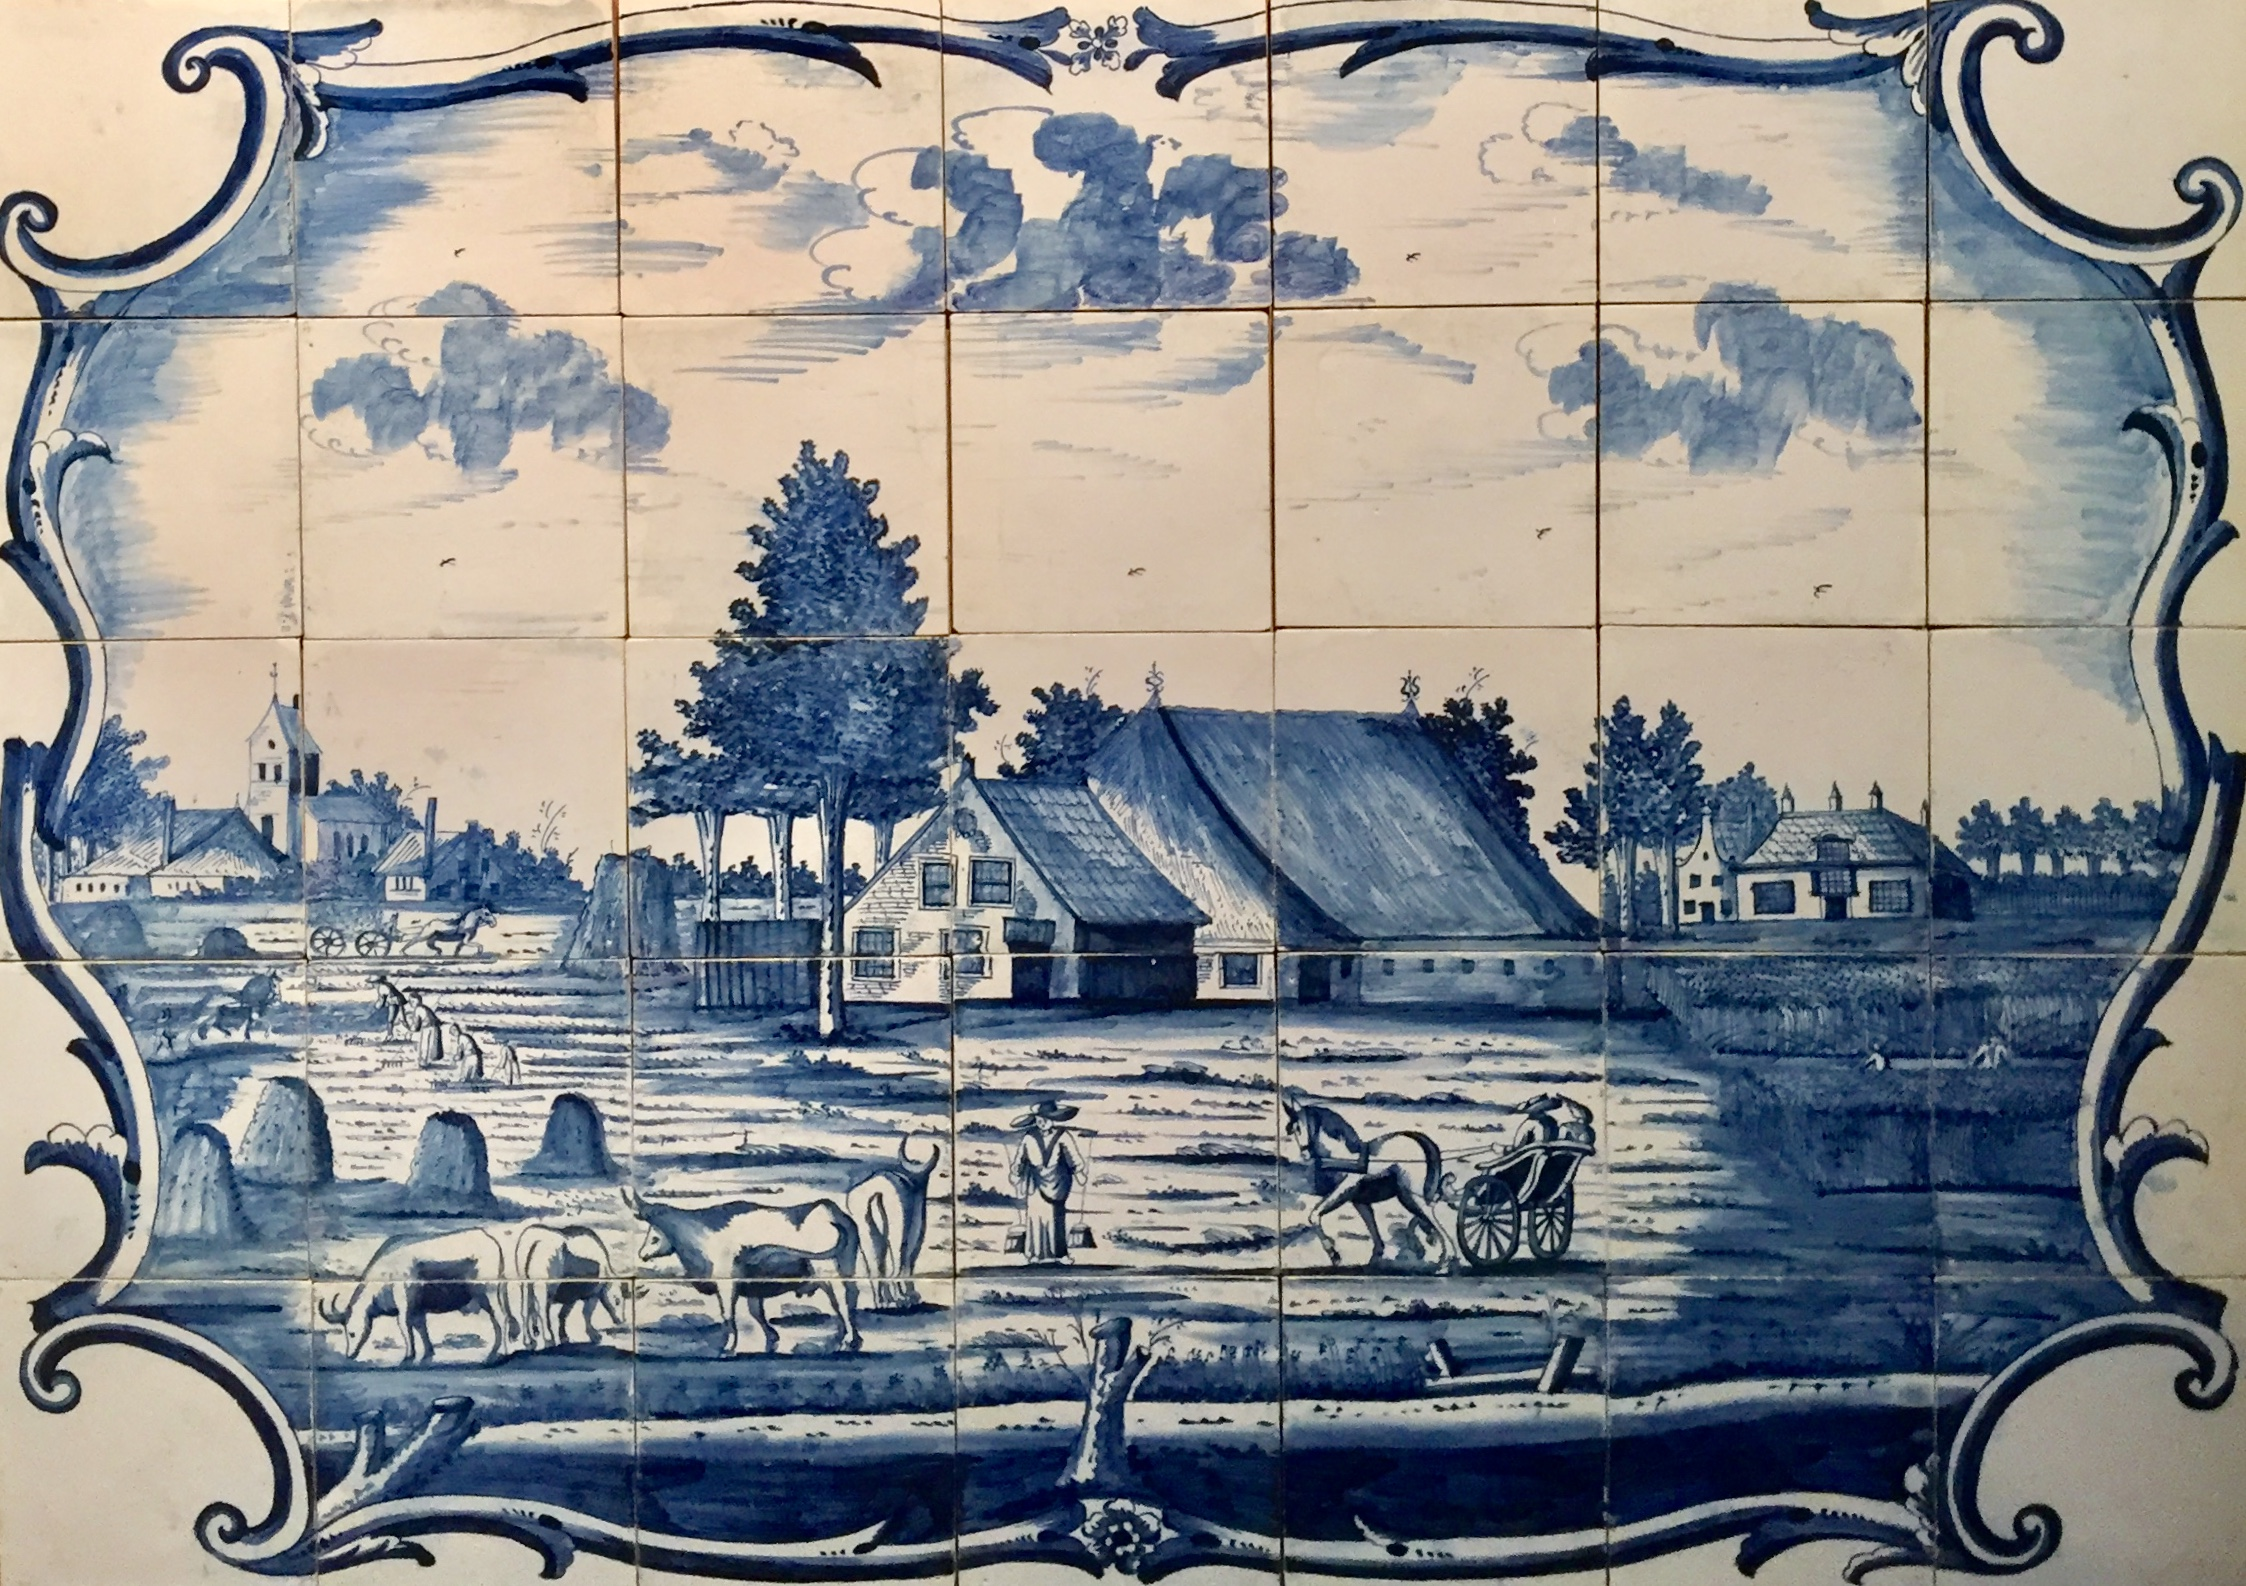 A Dutch Friesian landscape painted with cobalt like the Delft Blue ware.